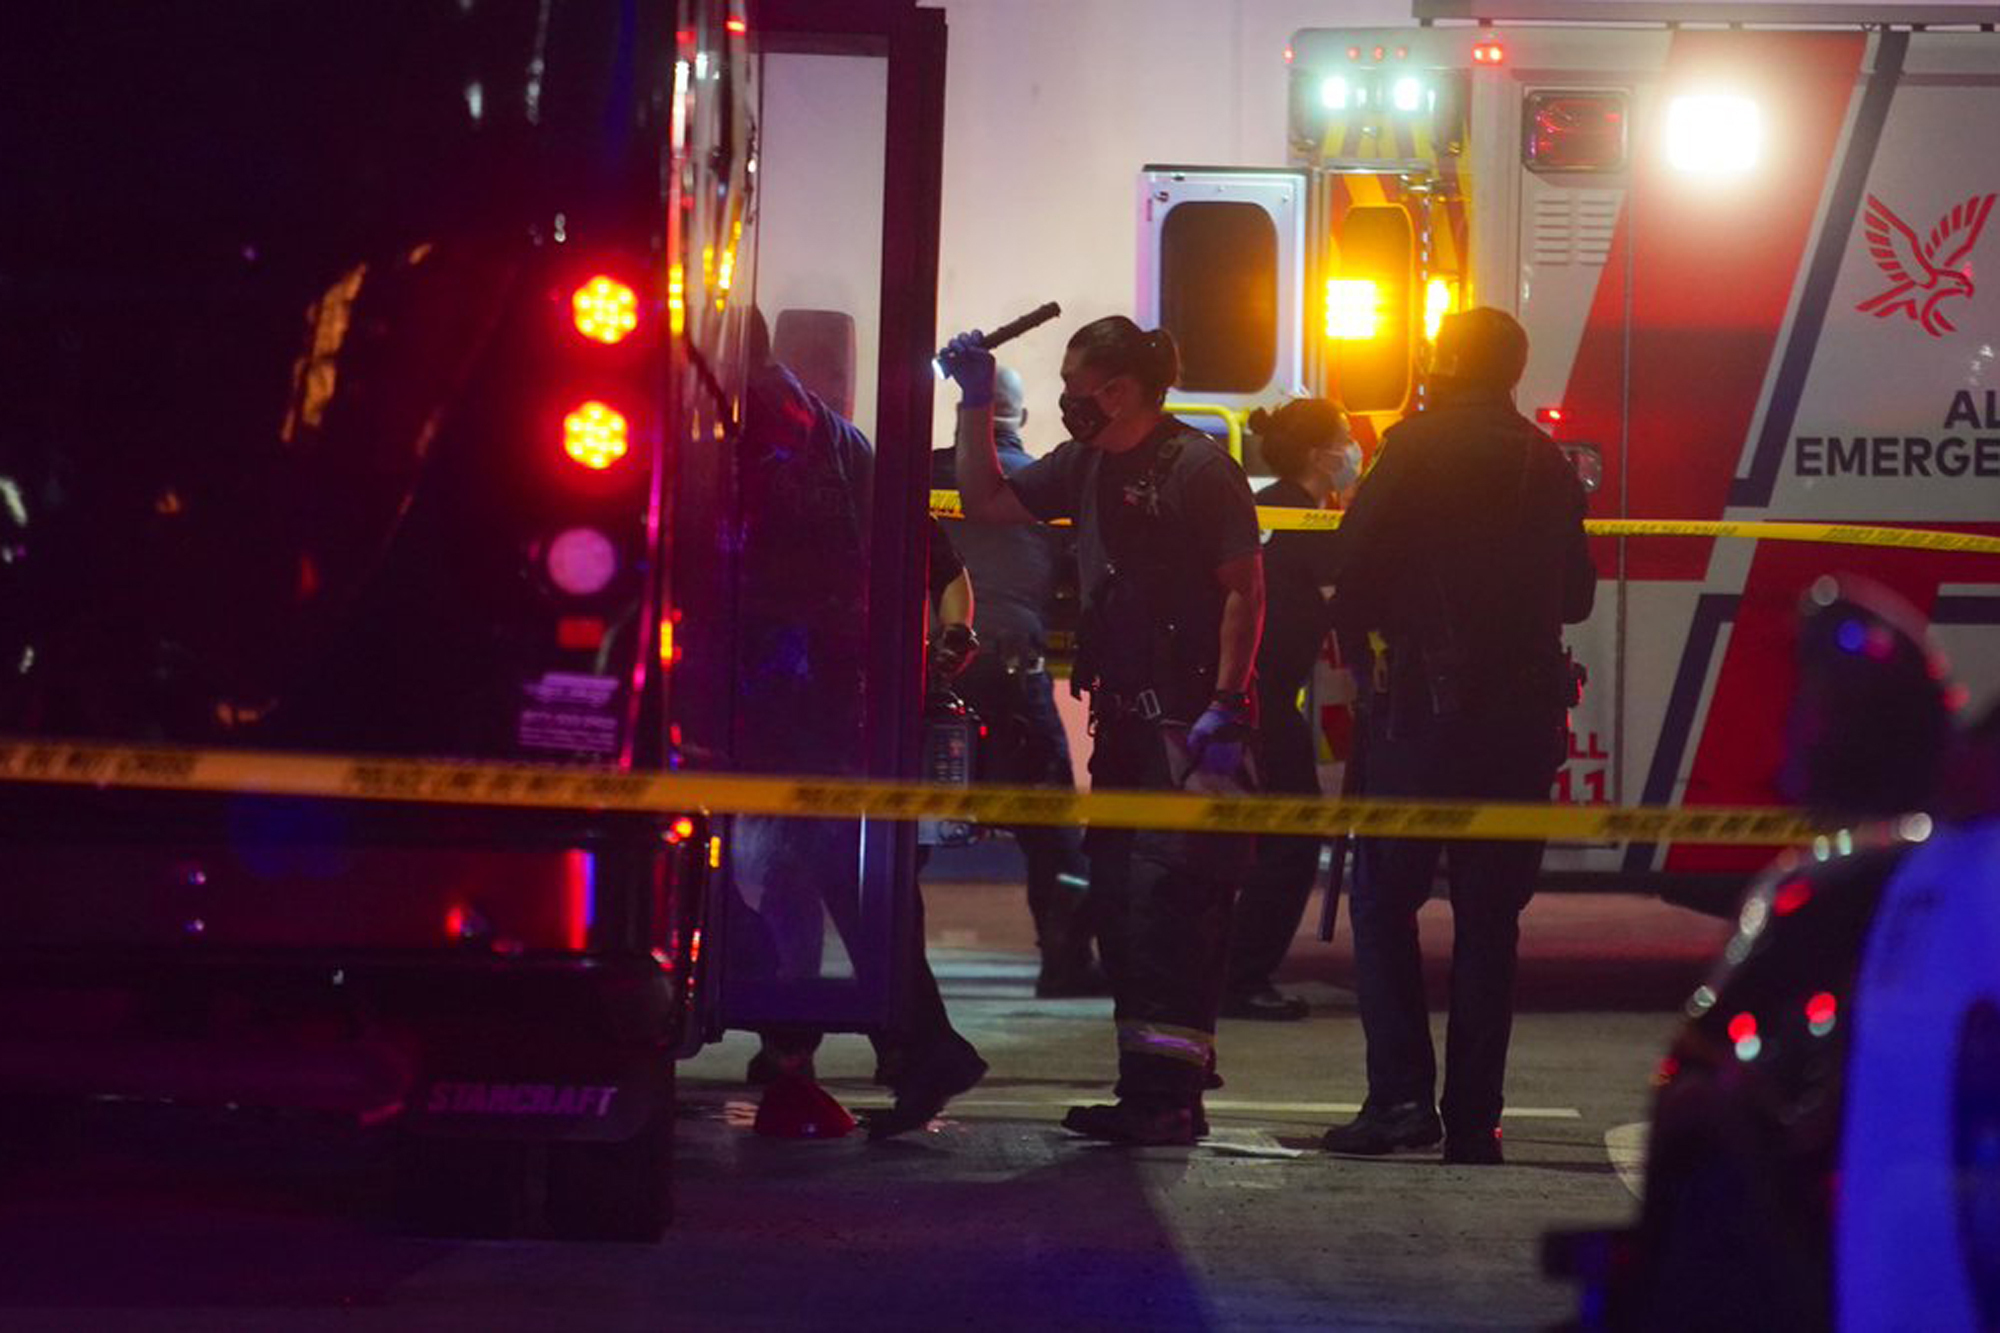 Oakland police and fire attend to multiple people who were injured in a shooting involving a party bus in East Oakland, Calif., on Tuesday, May 18, 2021. (Dylan Bouscher/Bay Area News Group via AP)